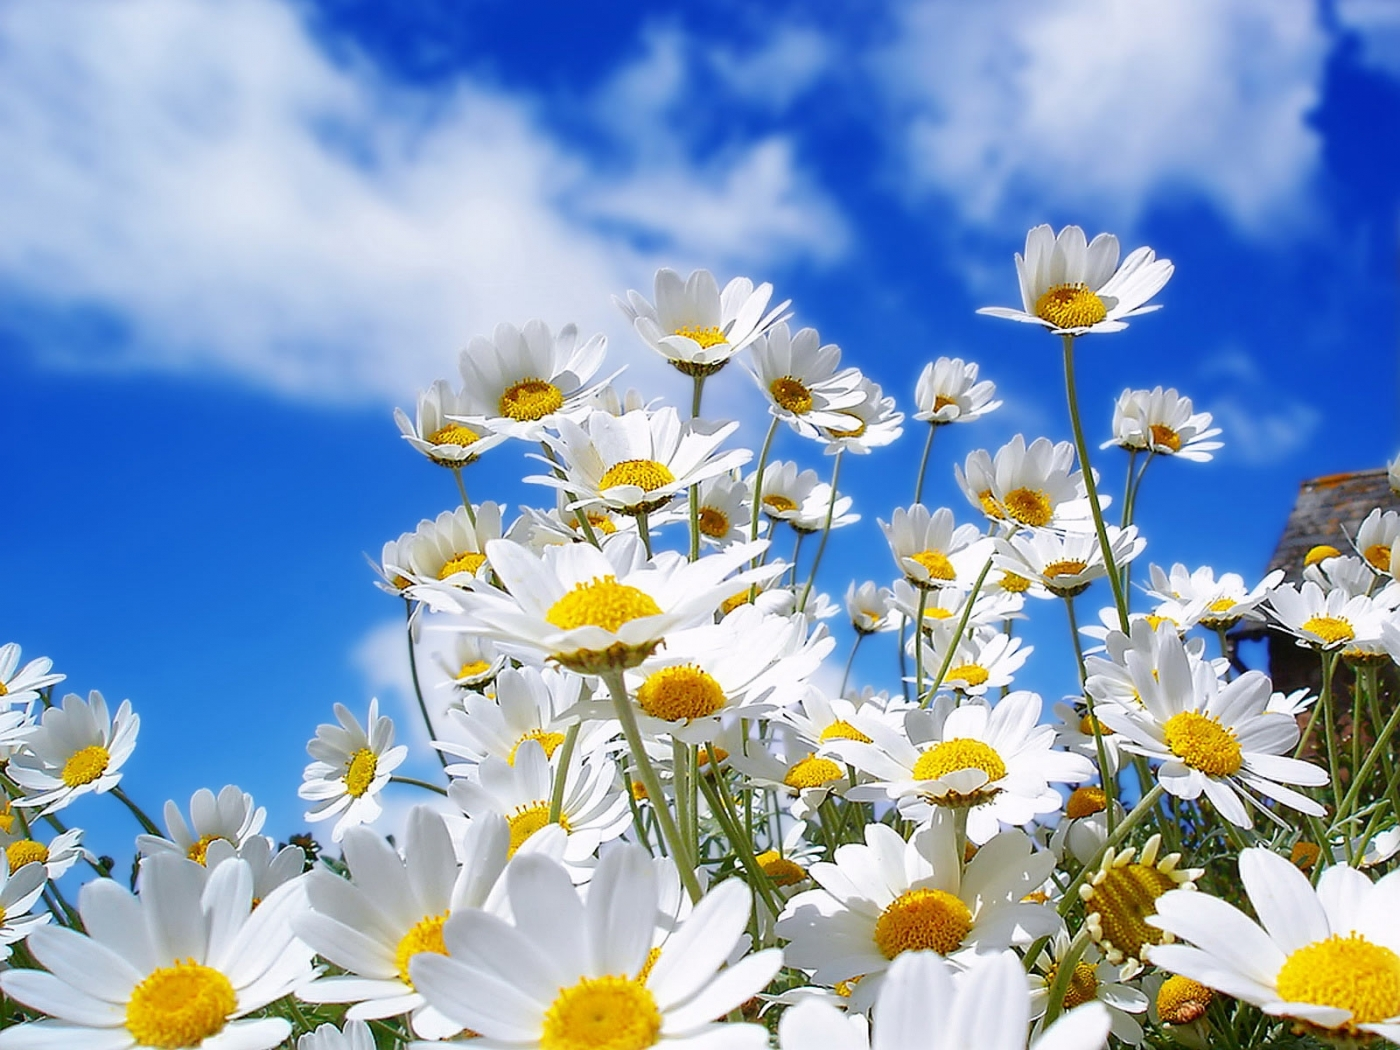 31289 download wallpaper Plants, Flowers, Camomile screensavers and pictures for free